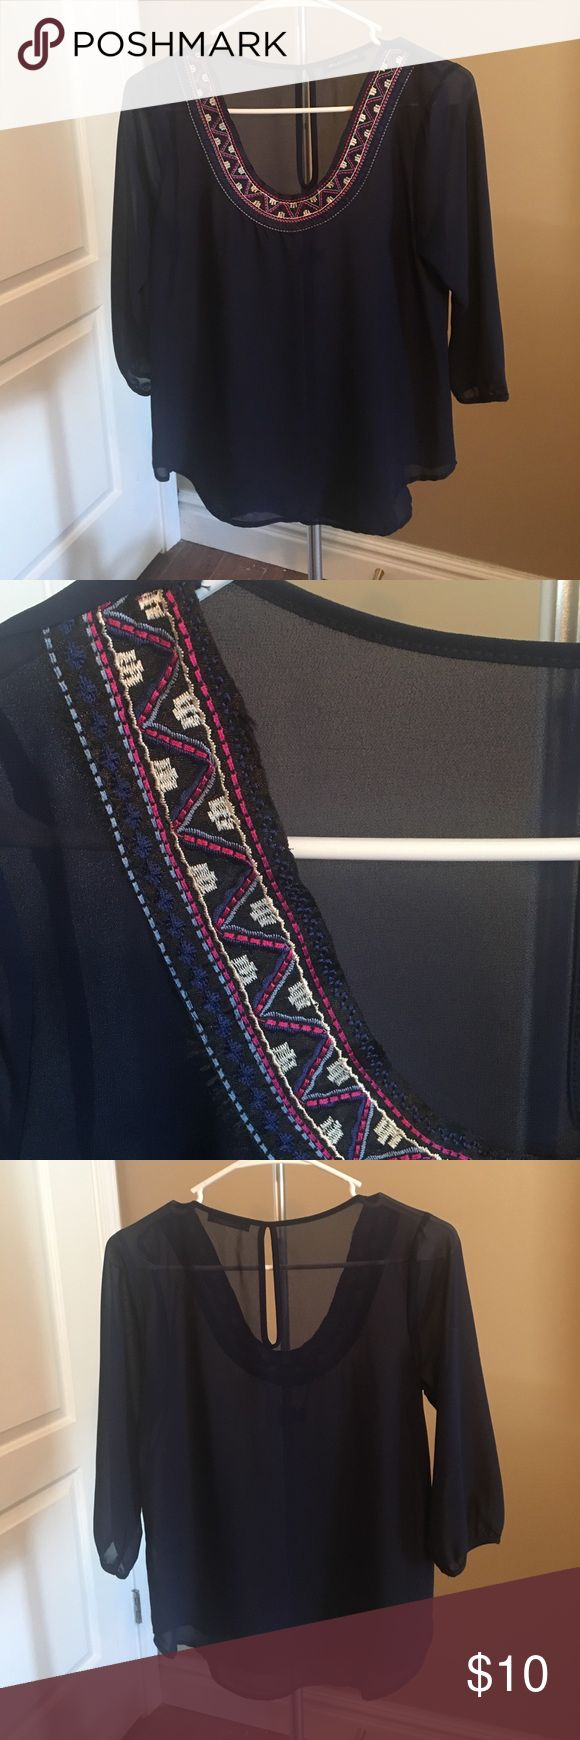 Embroidered neckline blouse Sheer navy blouse with adorable embroidered detail around the scoop neckline. Keyhole opening in back and 3/4 sleeves. Worn once, purchased from Apricot Lane Boutique jella couture Tops